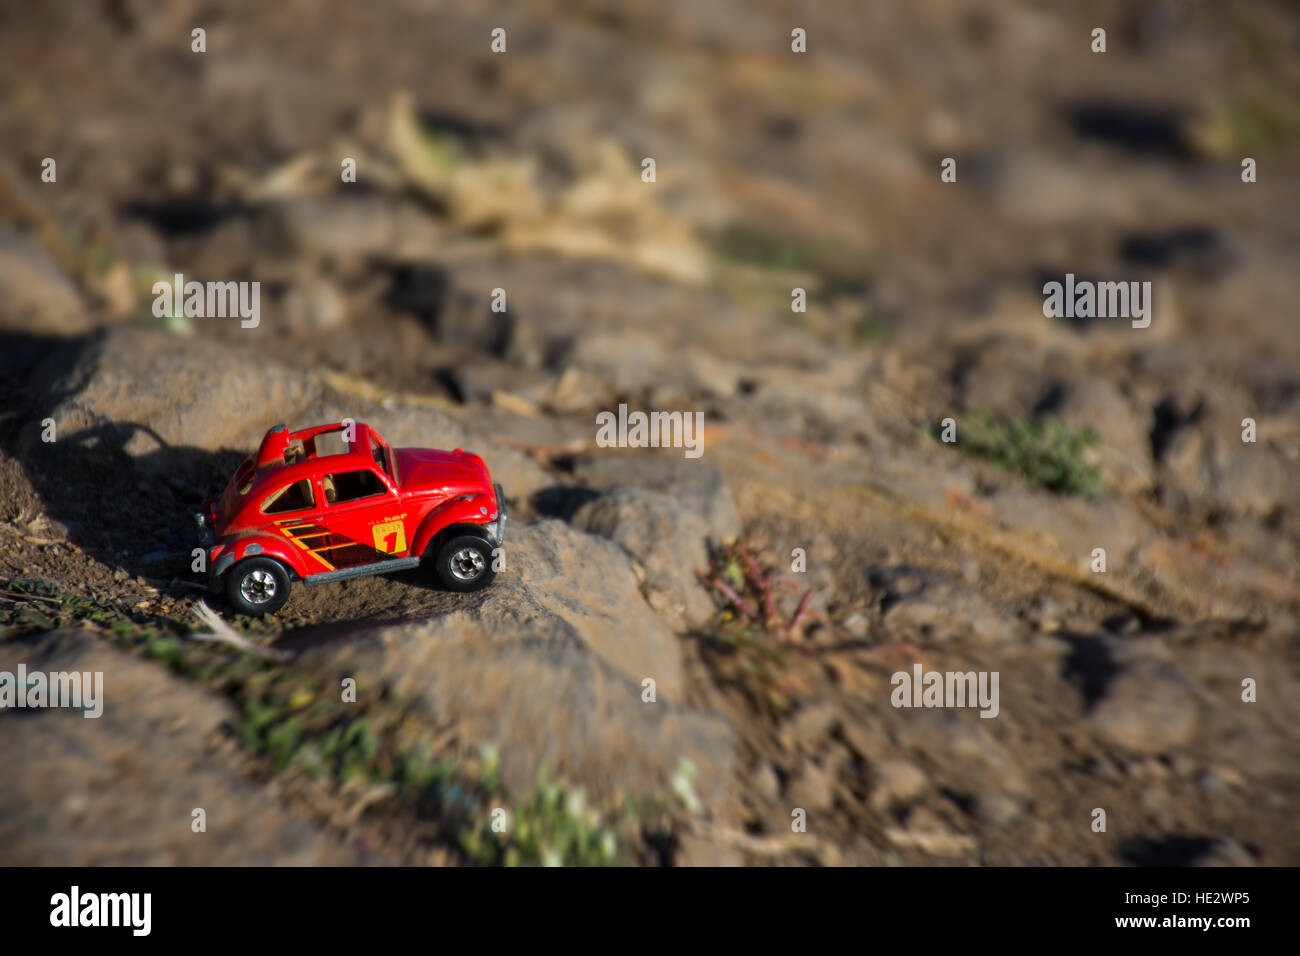 Miniature photo of a toy car Stock Photo